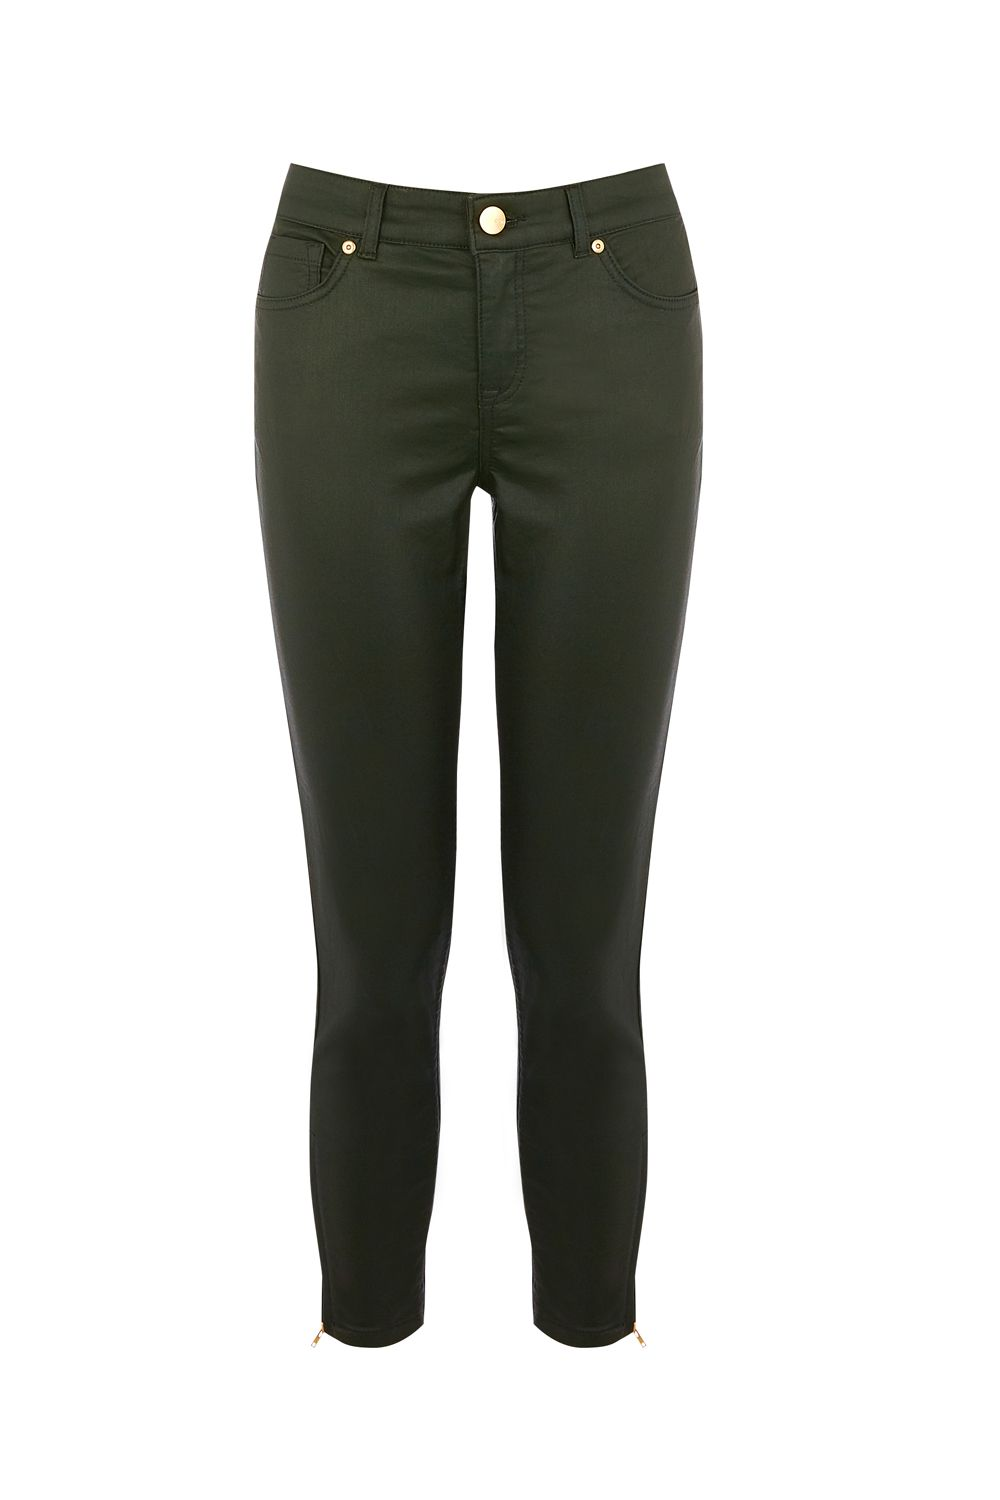 Oasis Dark Green Coated Isabella Jean, Khaki